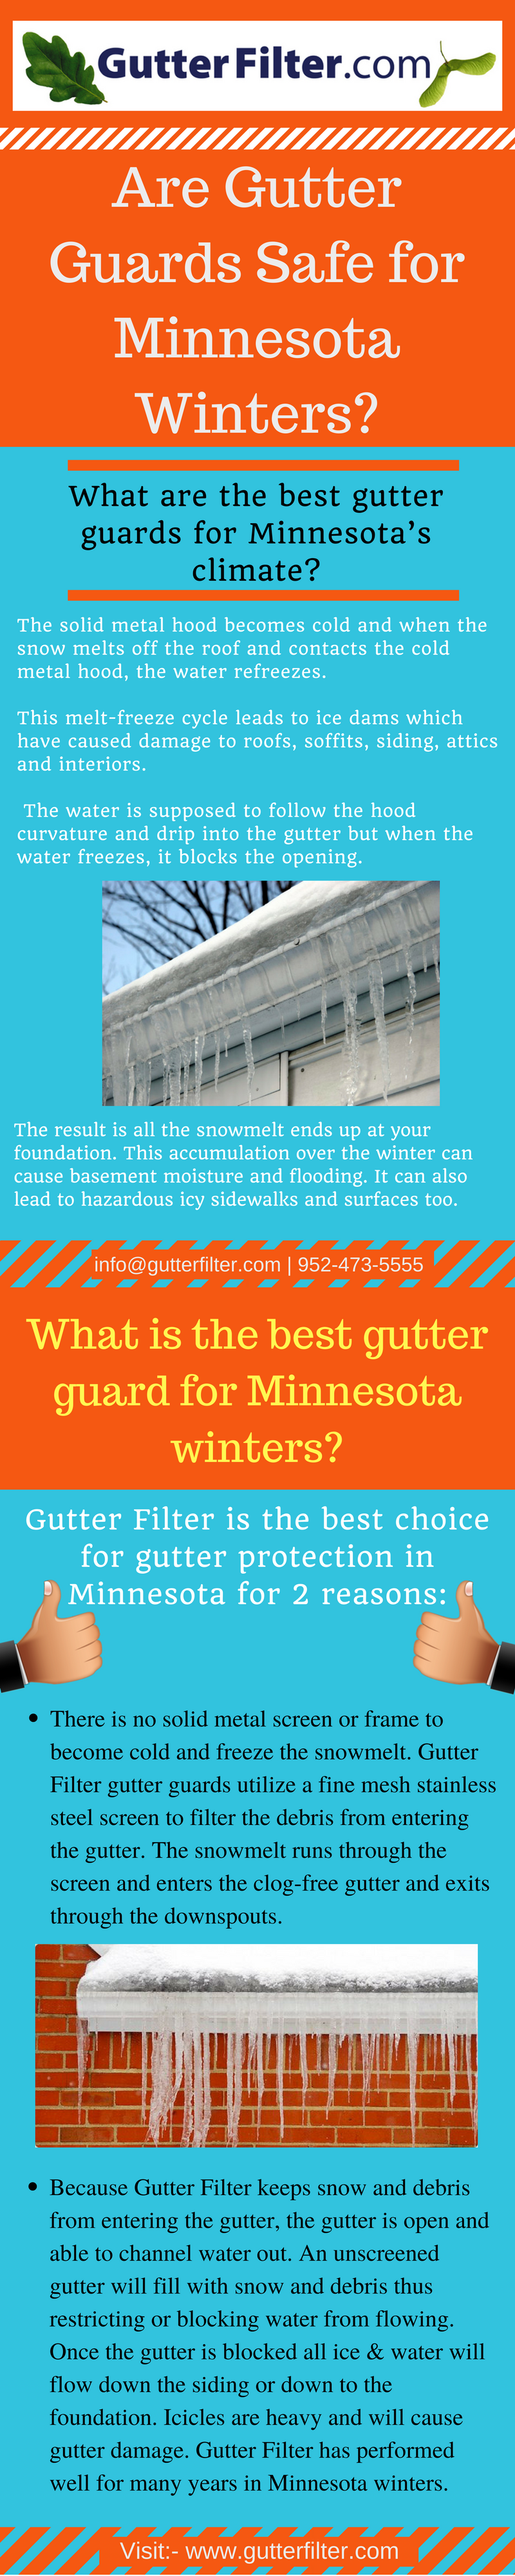 If you are looking for gutter protection then give us a call on (952) 473-5555. We would love to help you. If you want to know more about why gutter guards are safe for Minnesota winters then click on the link and view the visual presentation by Gutter Filter.